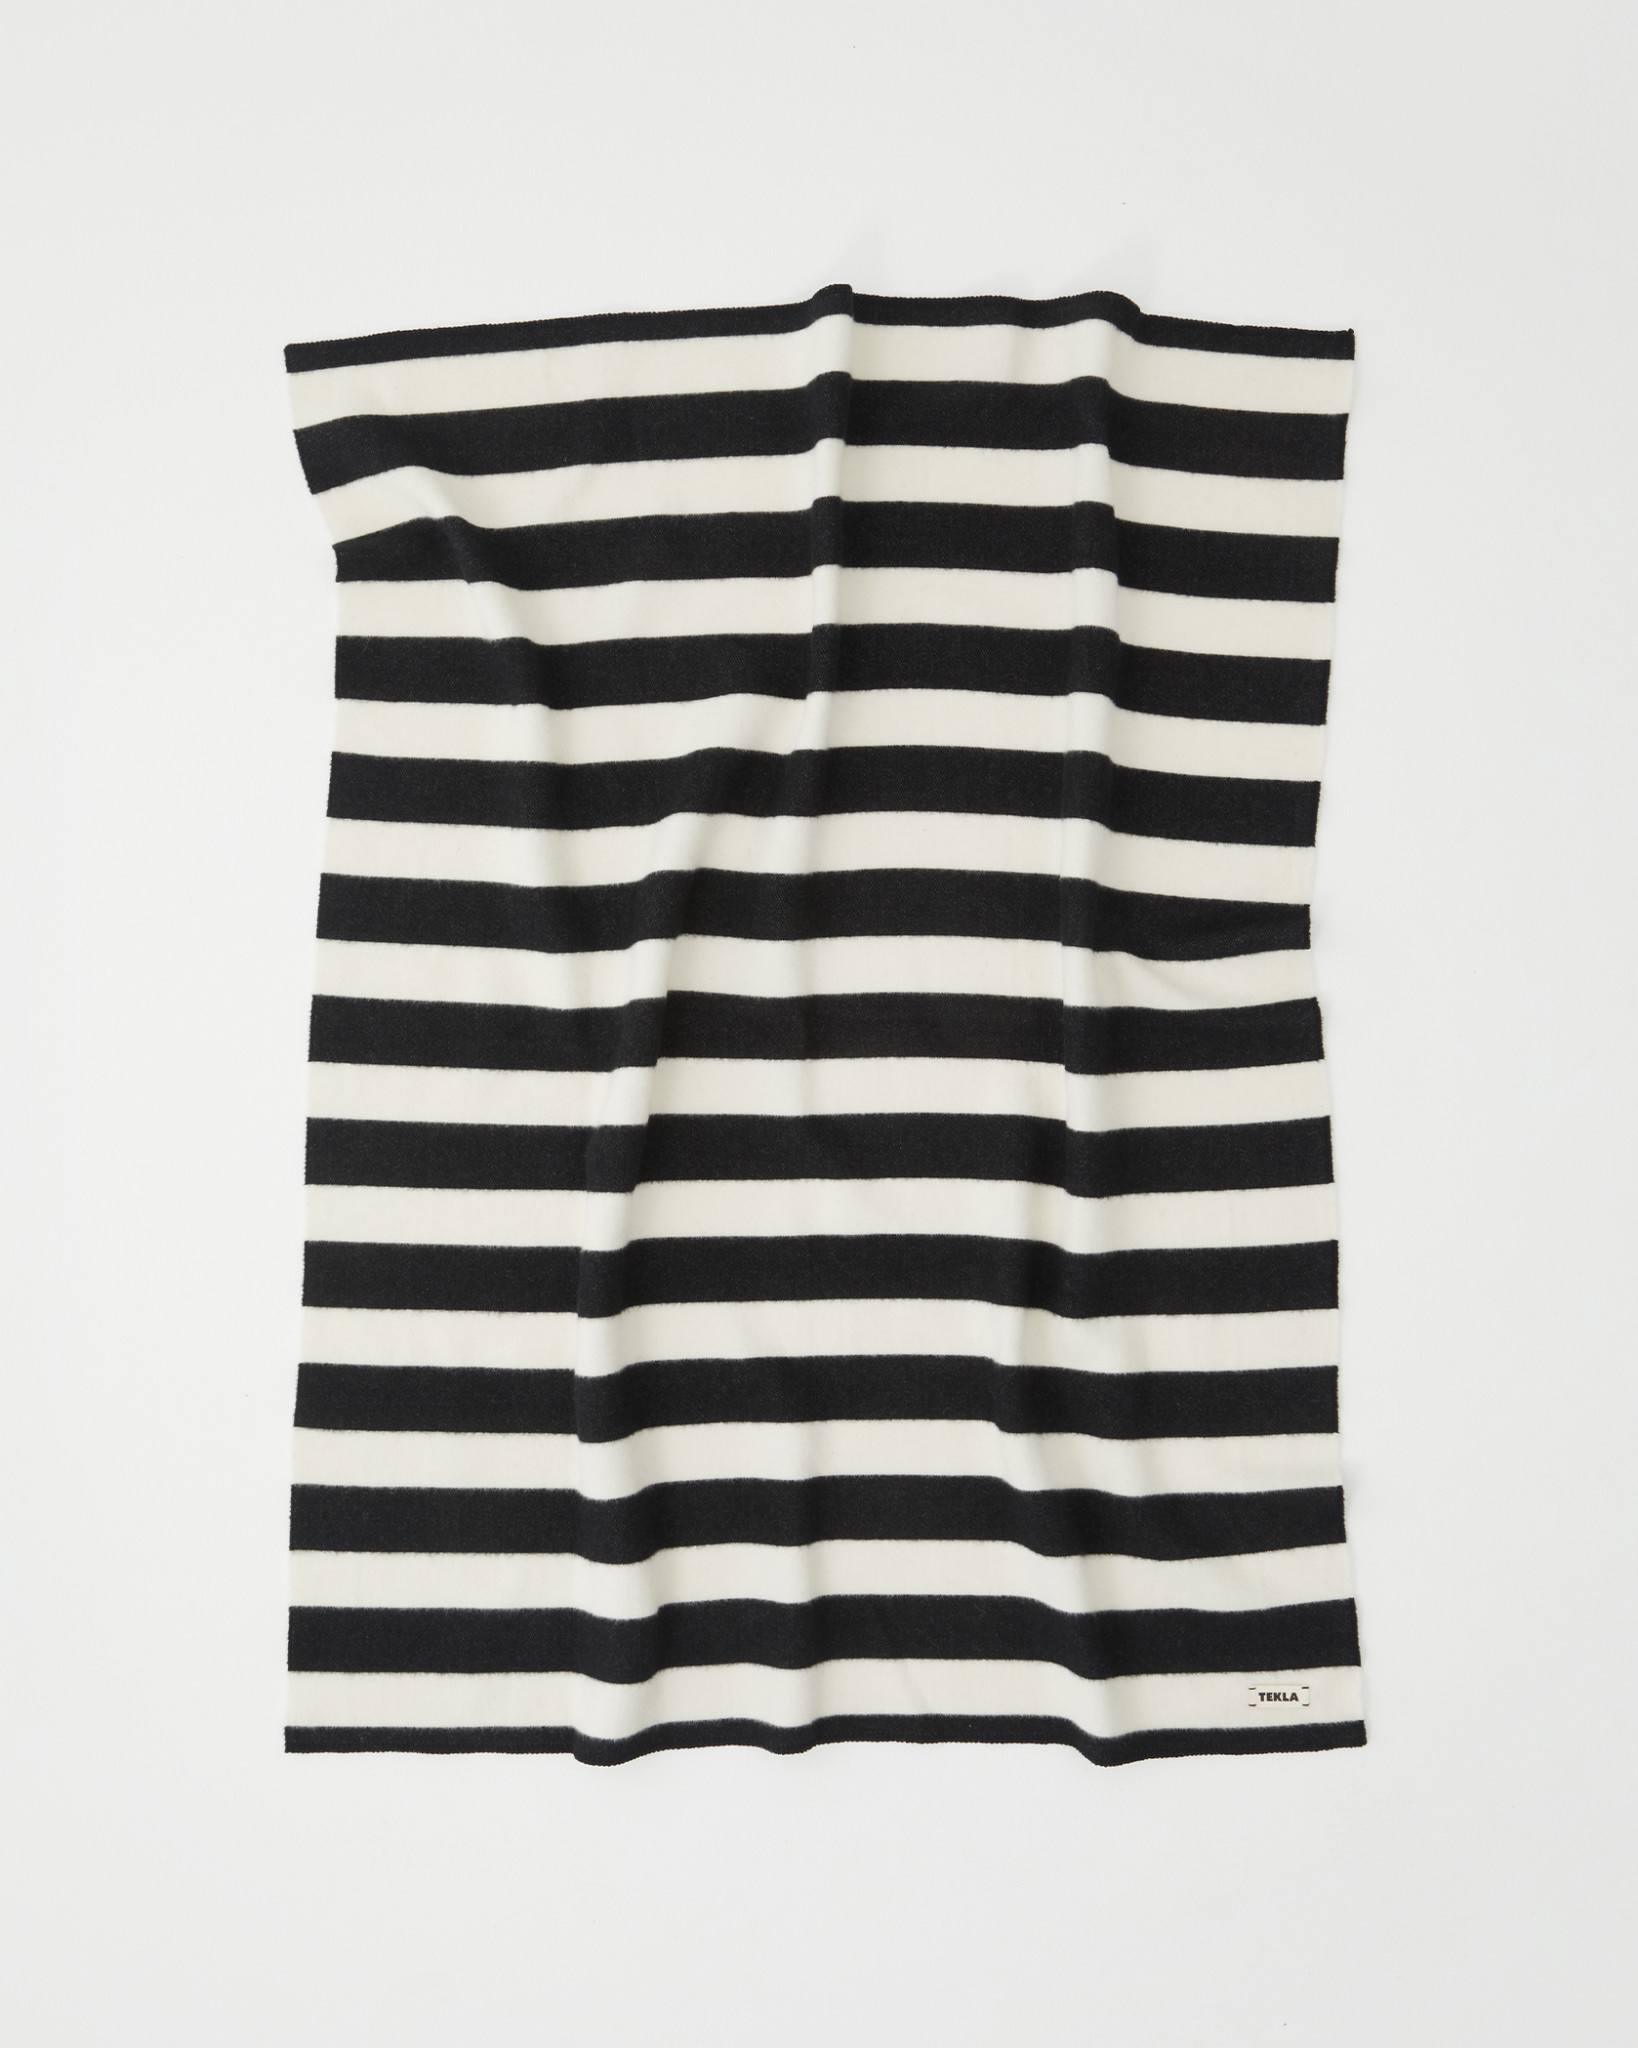 TEKLA Wool Throw Blanket in Black and White Stripe